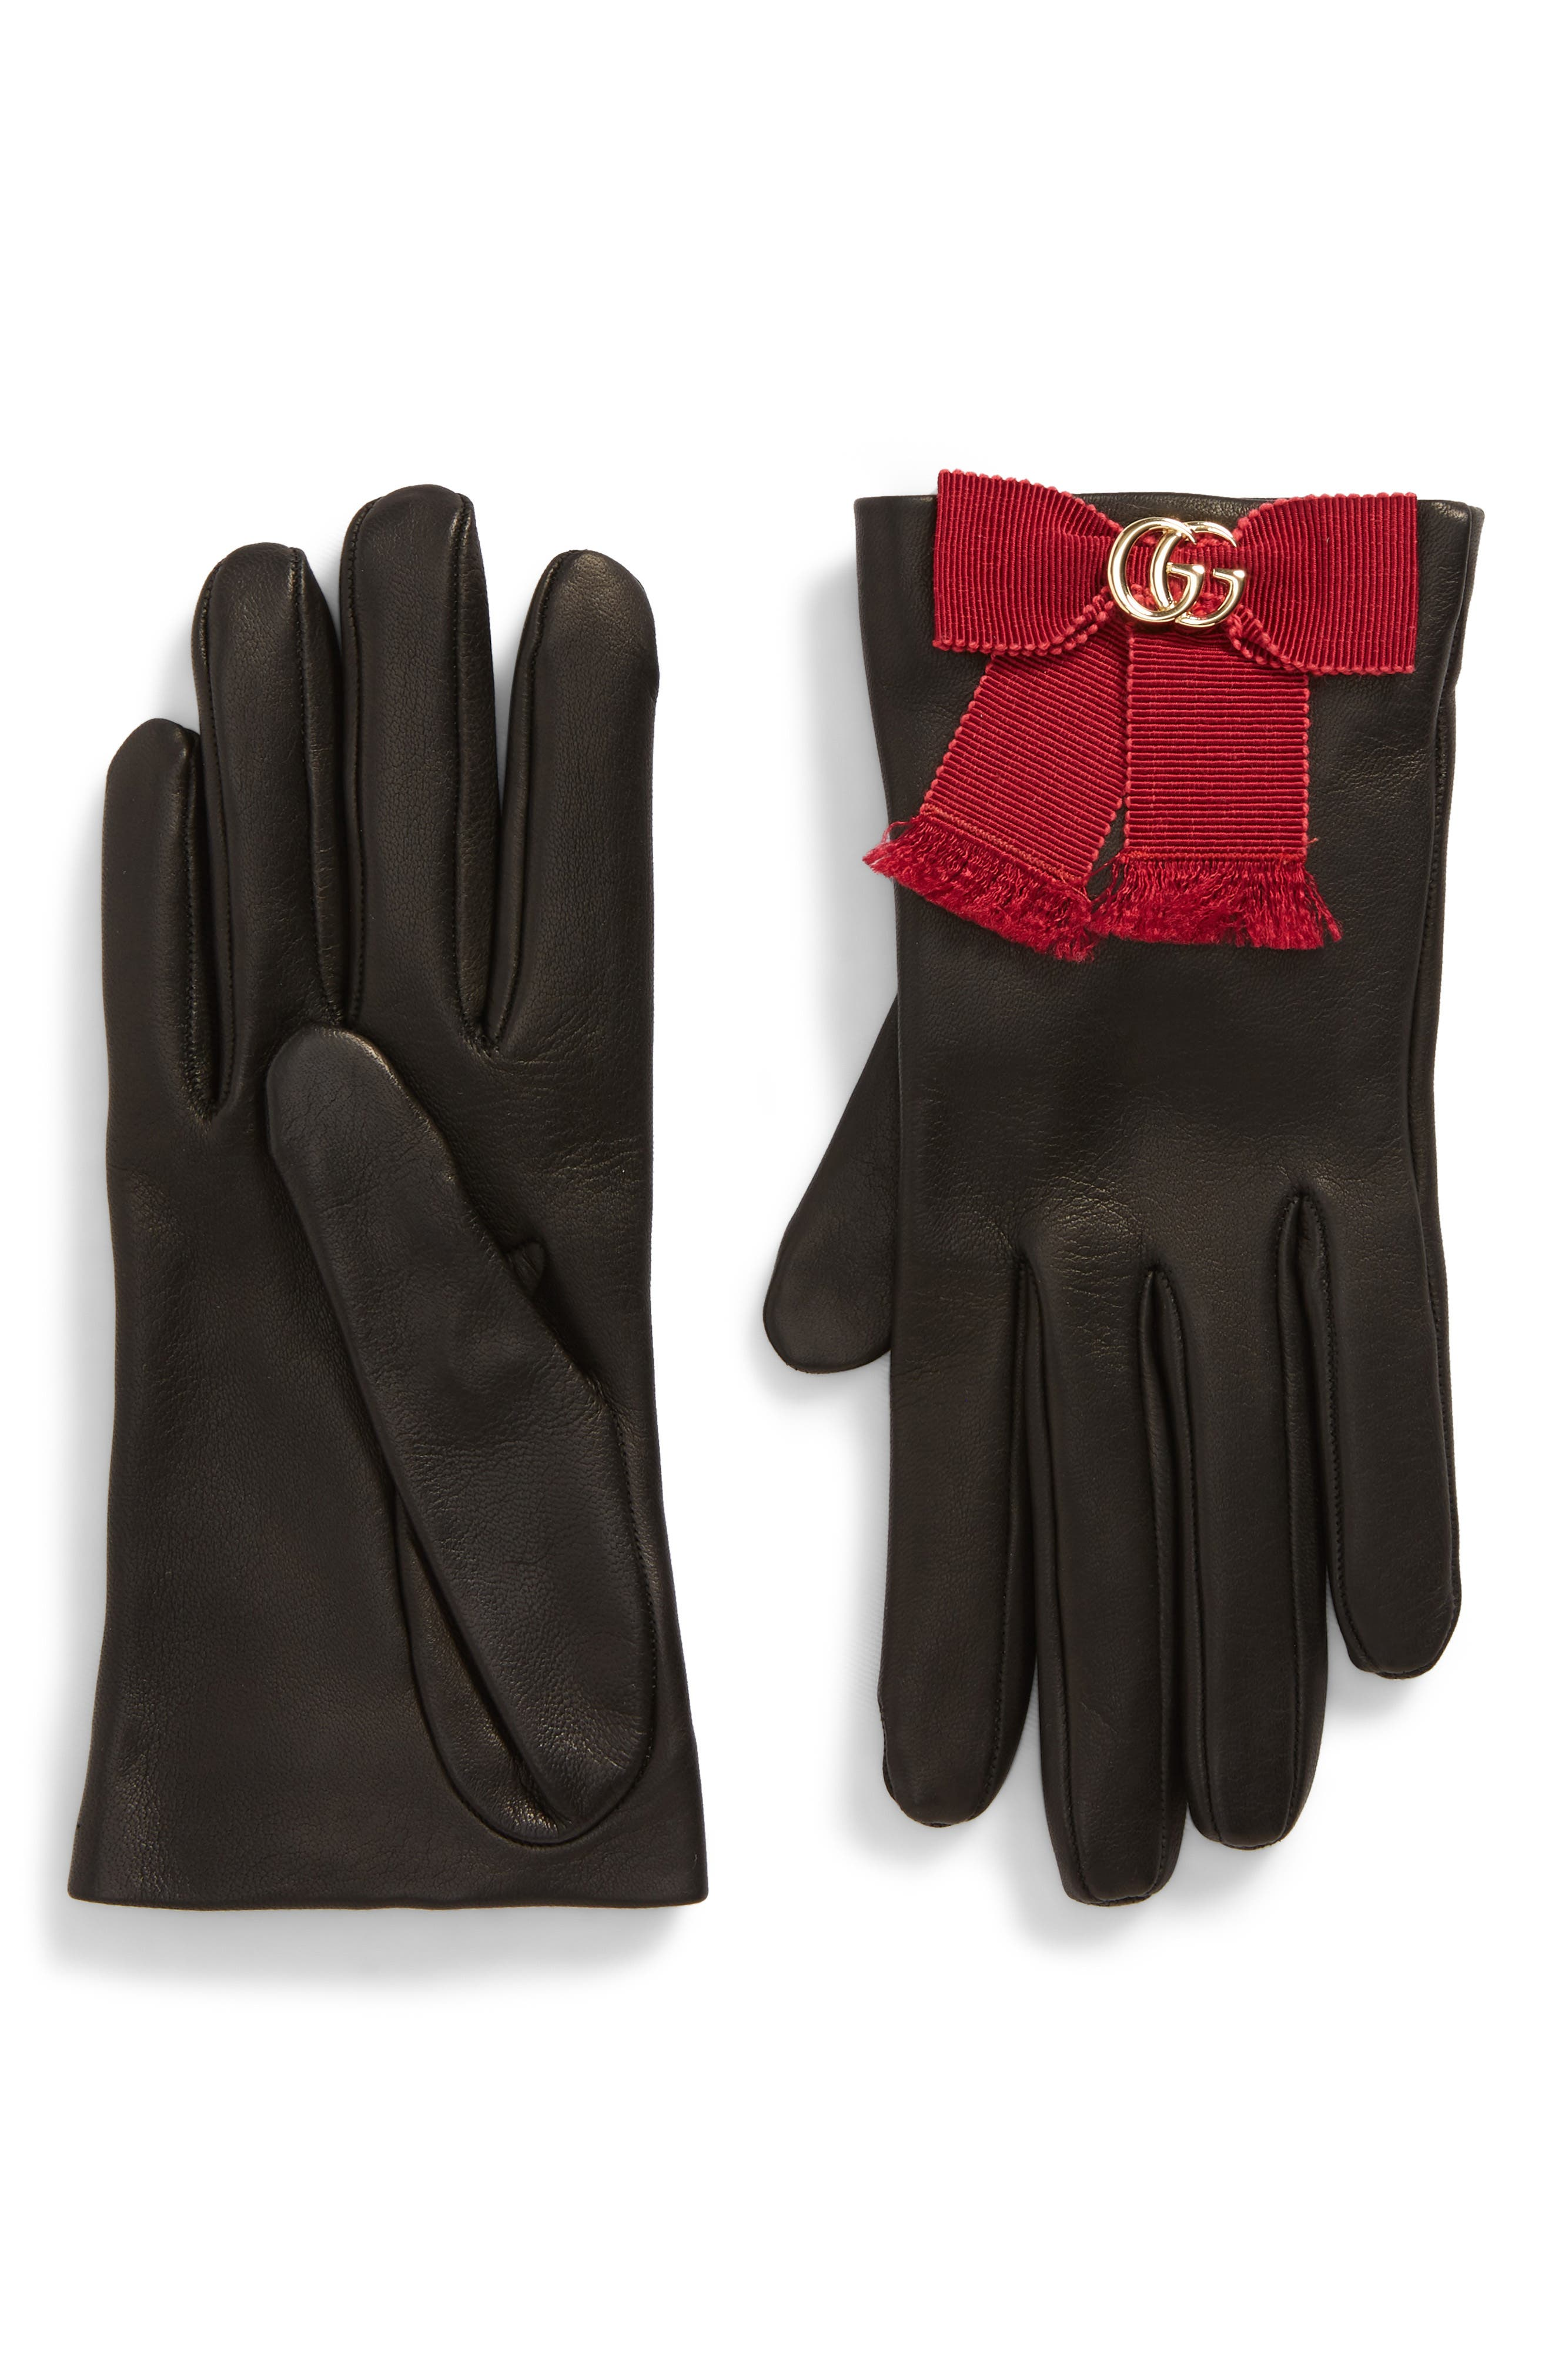 Gucci GG Grosgrain Bow Leather Gloves